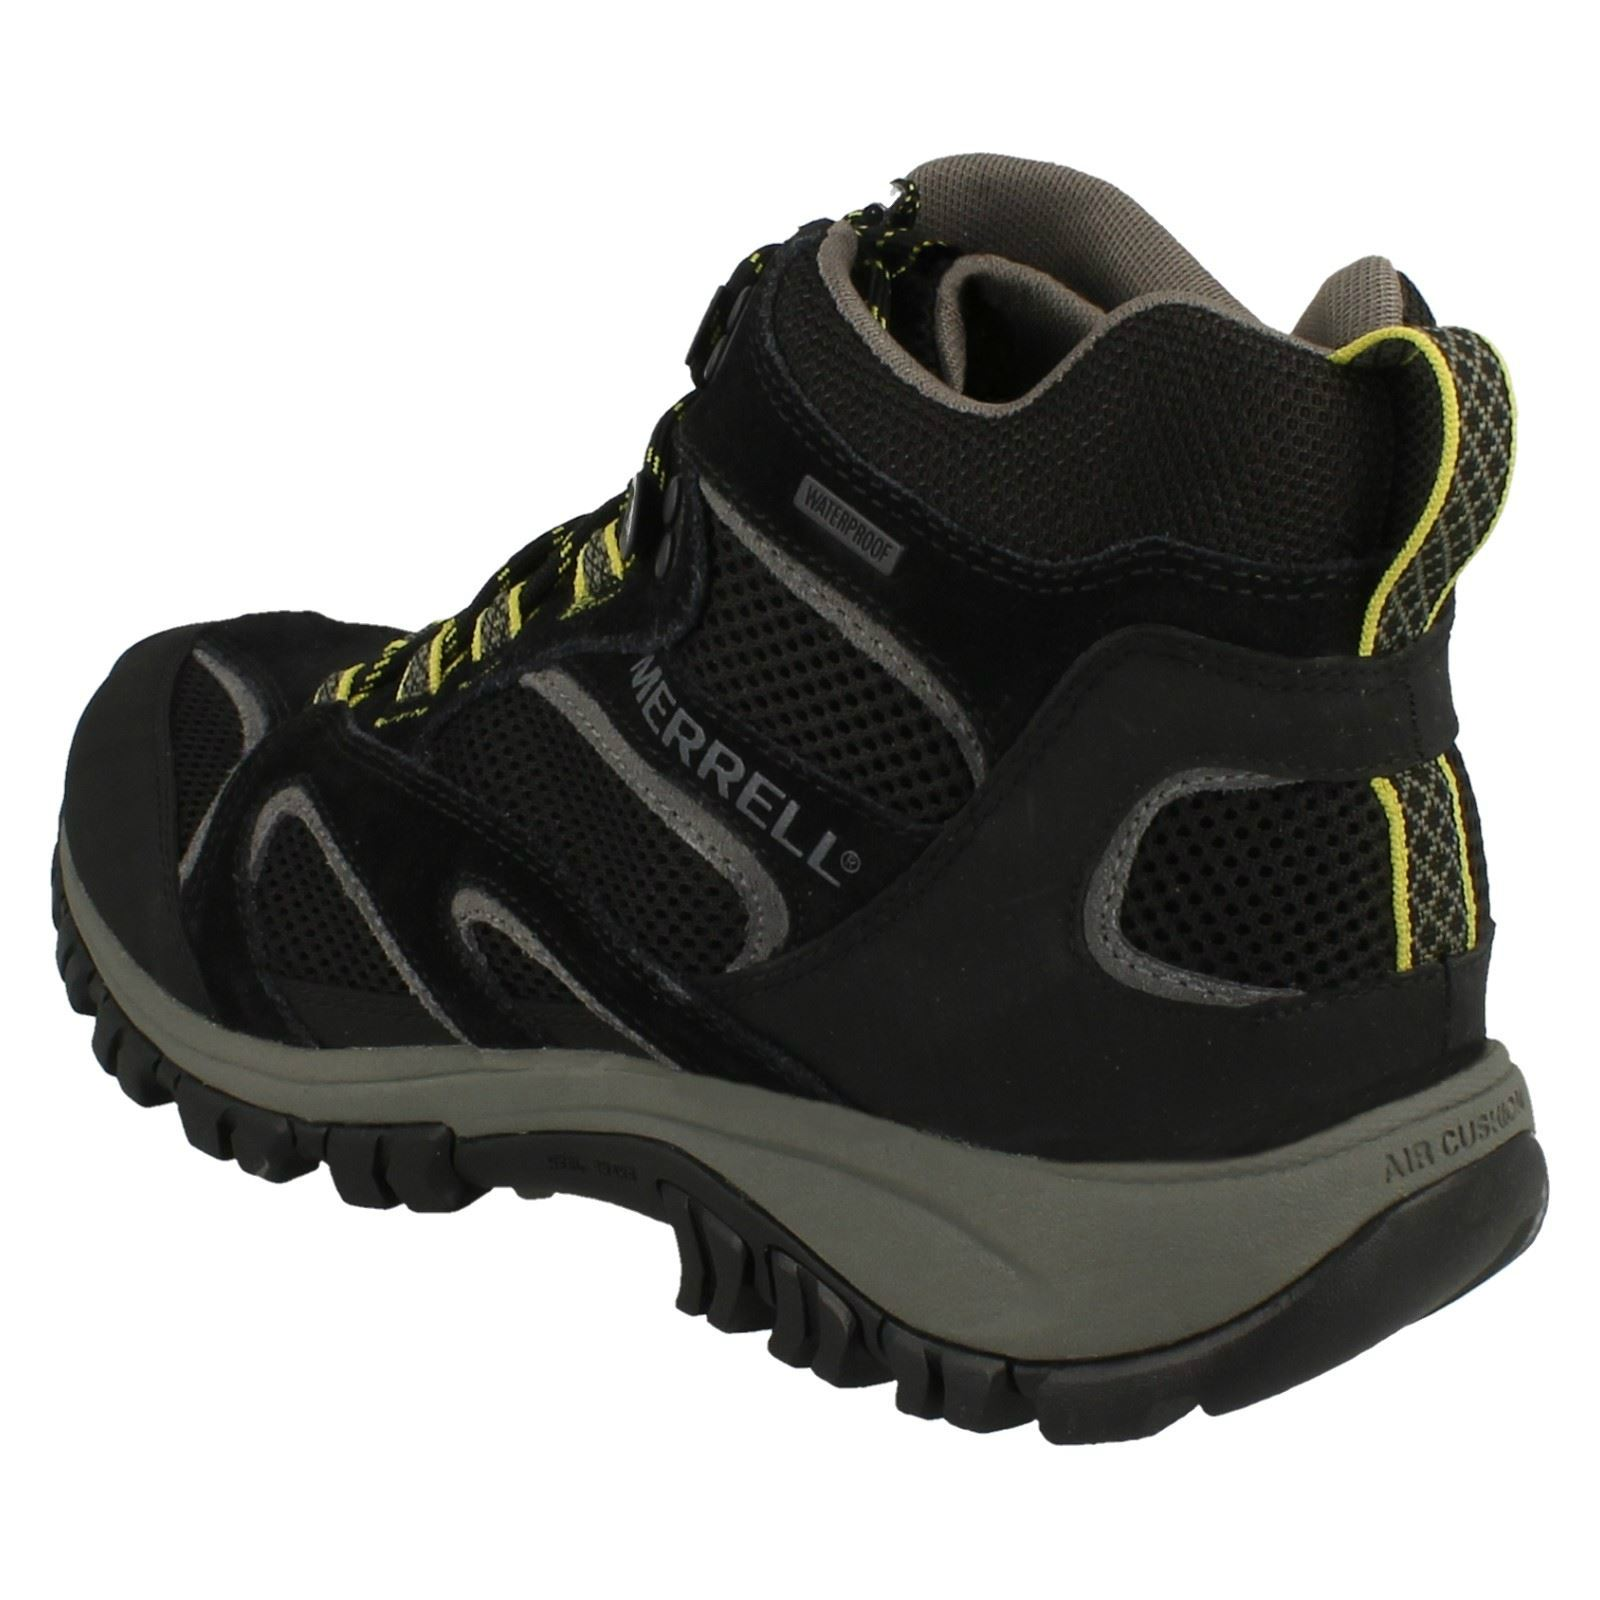 thumbnail 9 - Mens-Merrell-Waterproof-Walking-Boots-039-Phoenix-Mid-039